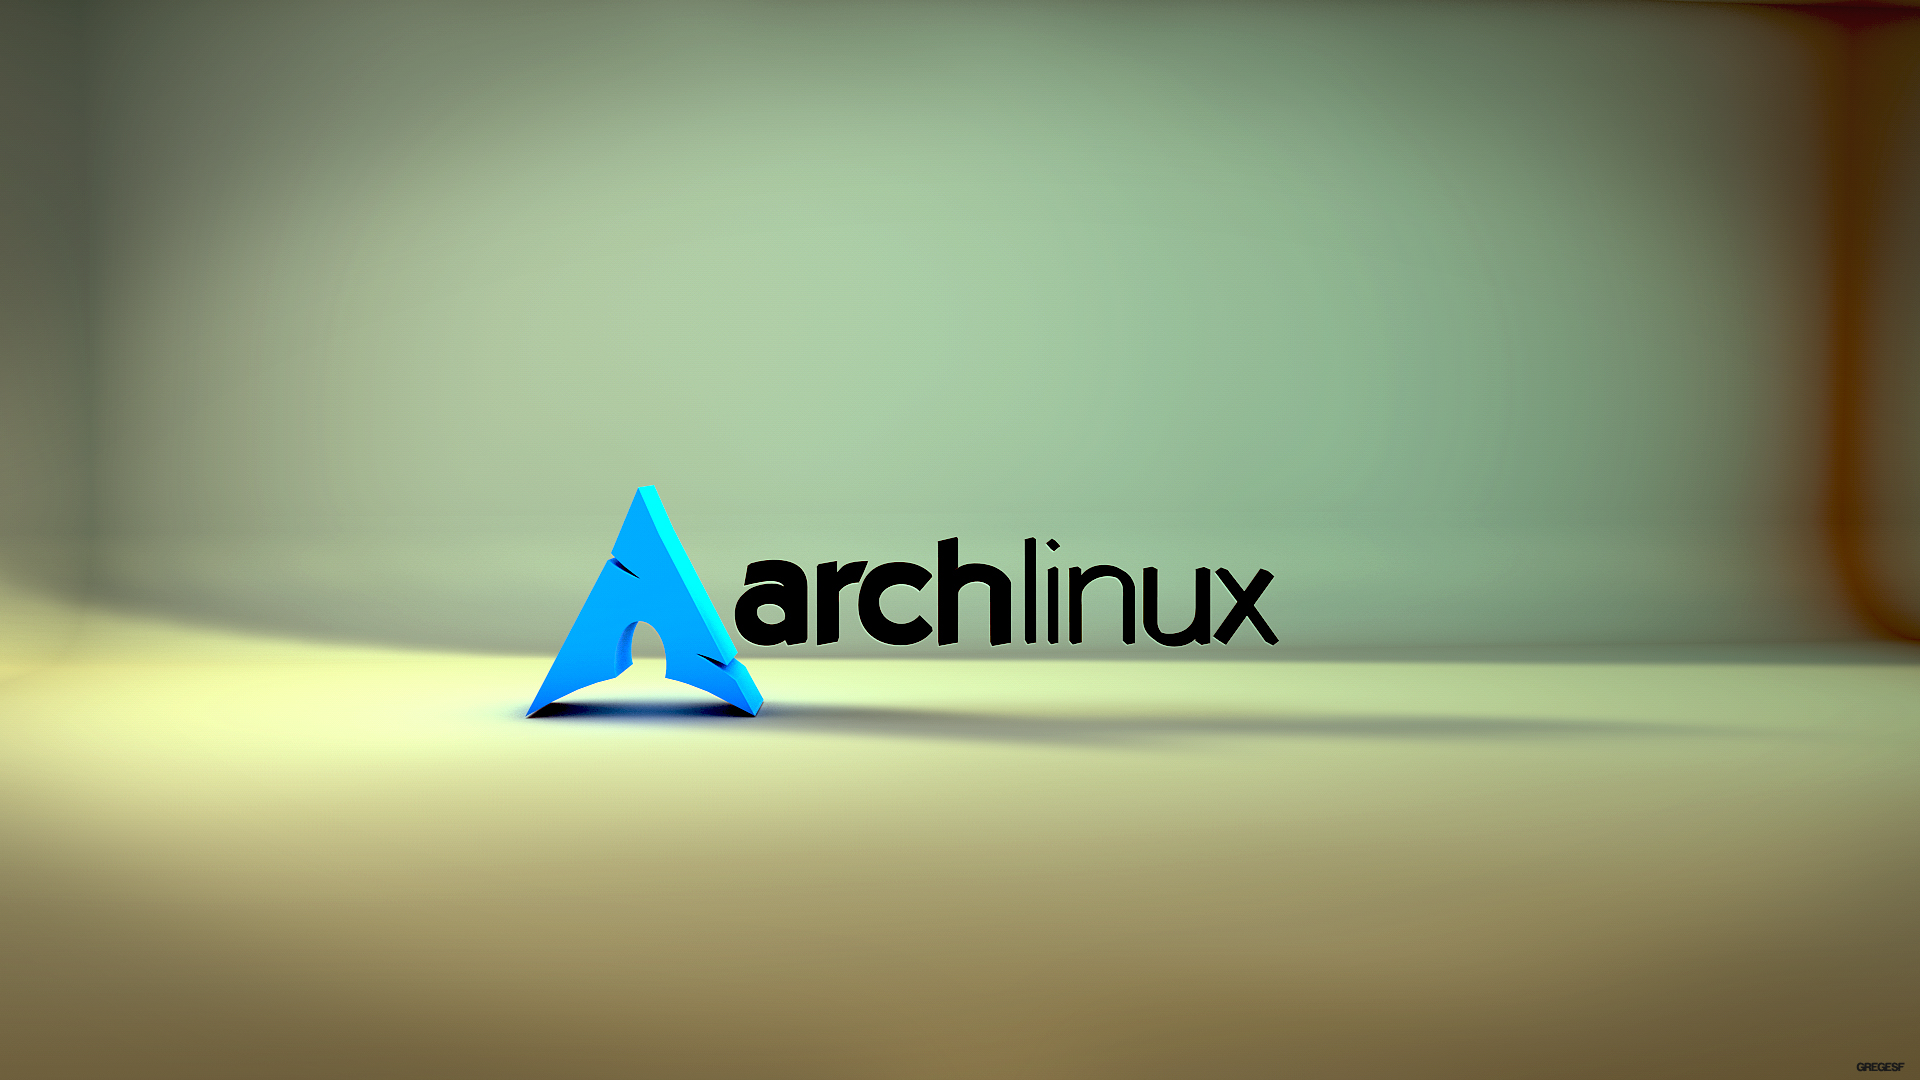 Archlinux wallpaper 221860 1920x1080